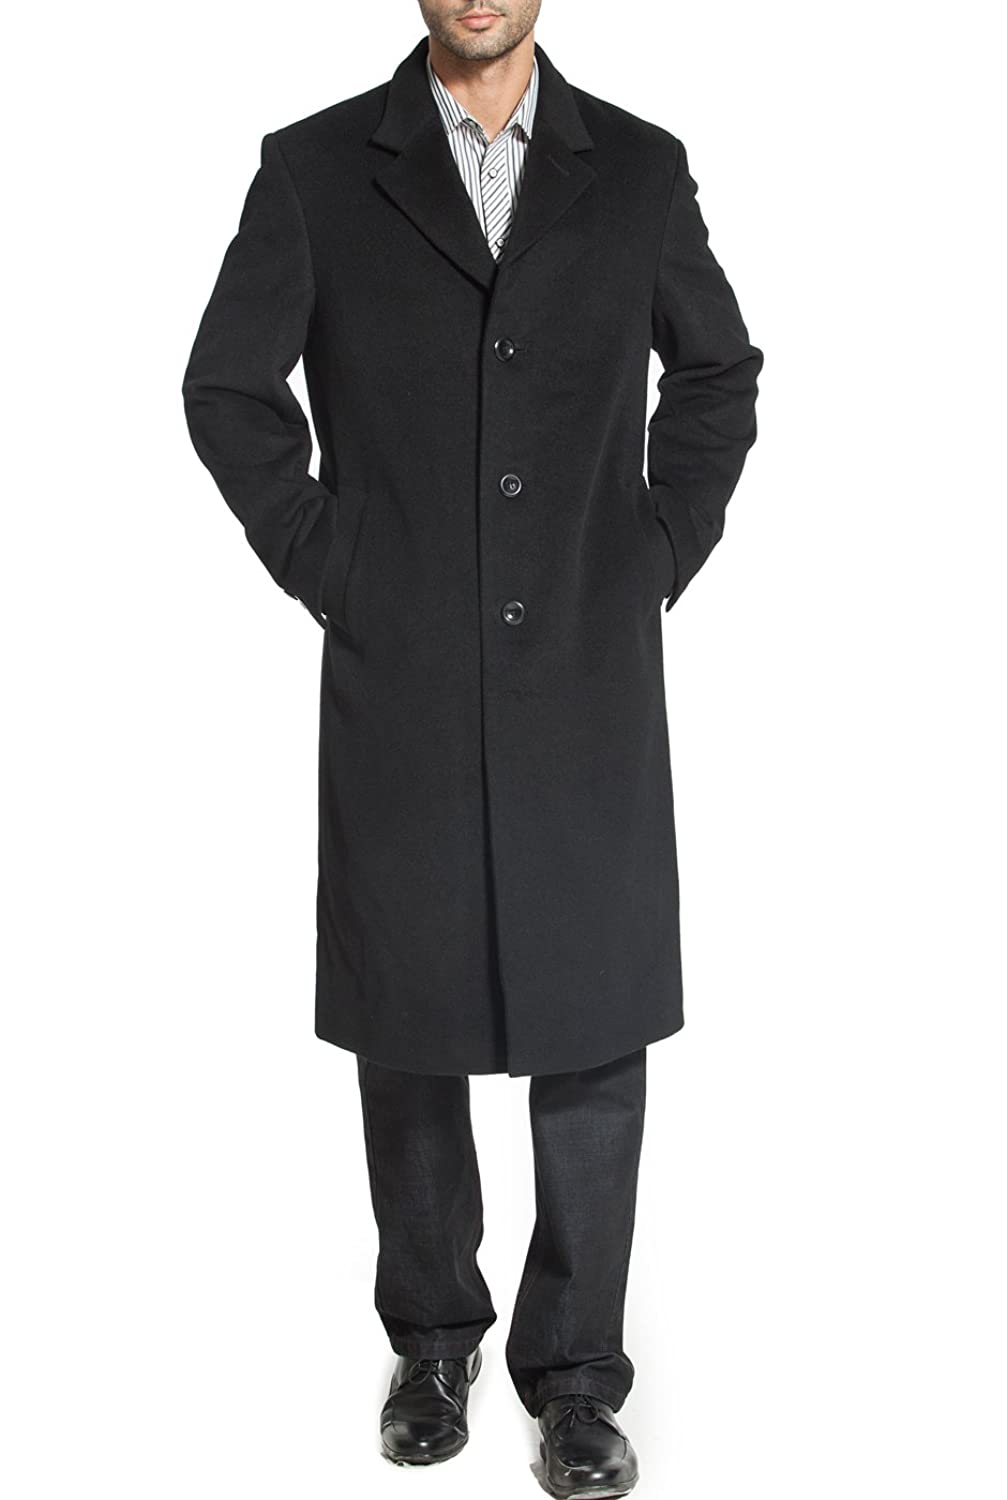 Men's Vintage Style Coats and Jackets BGSD Mens Henry Cashmere Blend Long Walking Coat (M) $169.99 AT vintagedancer.com